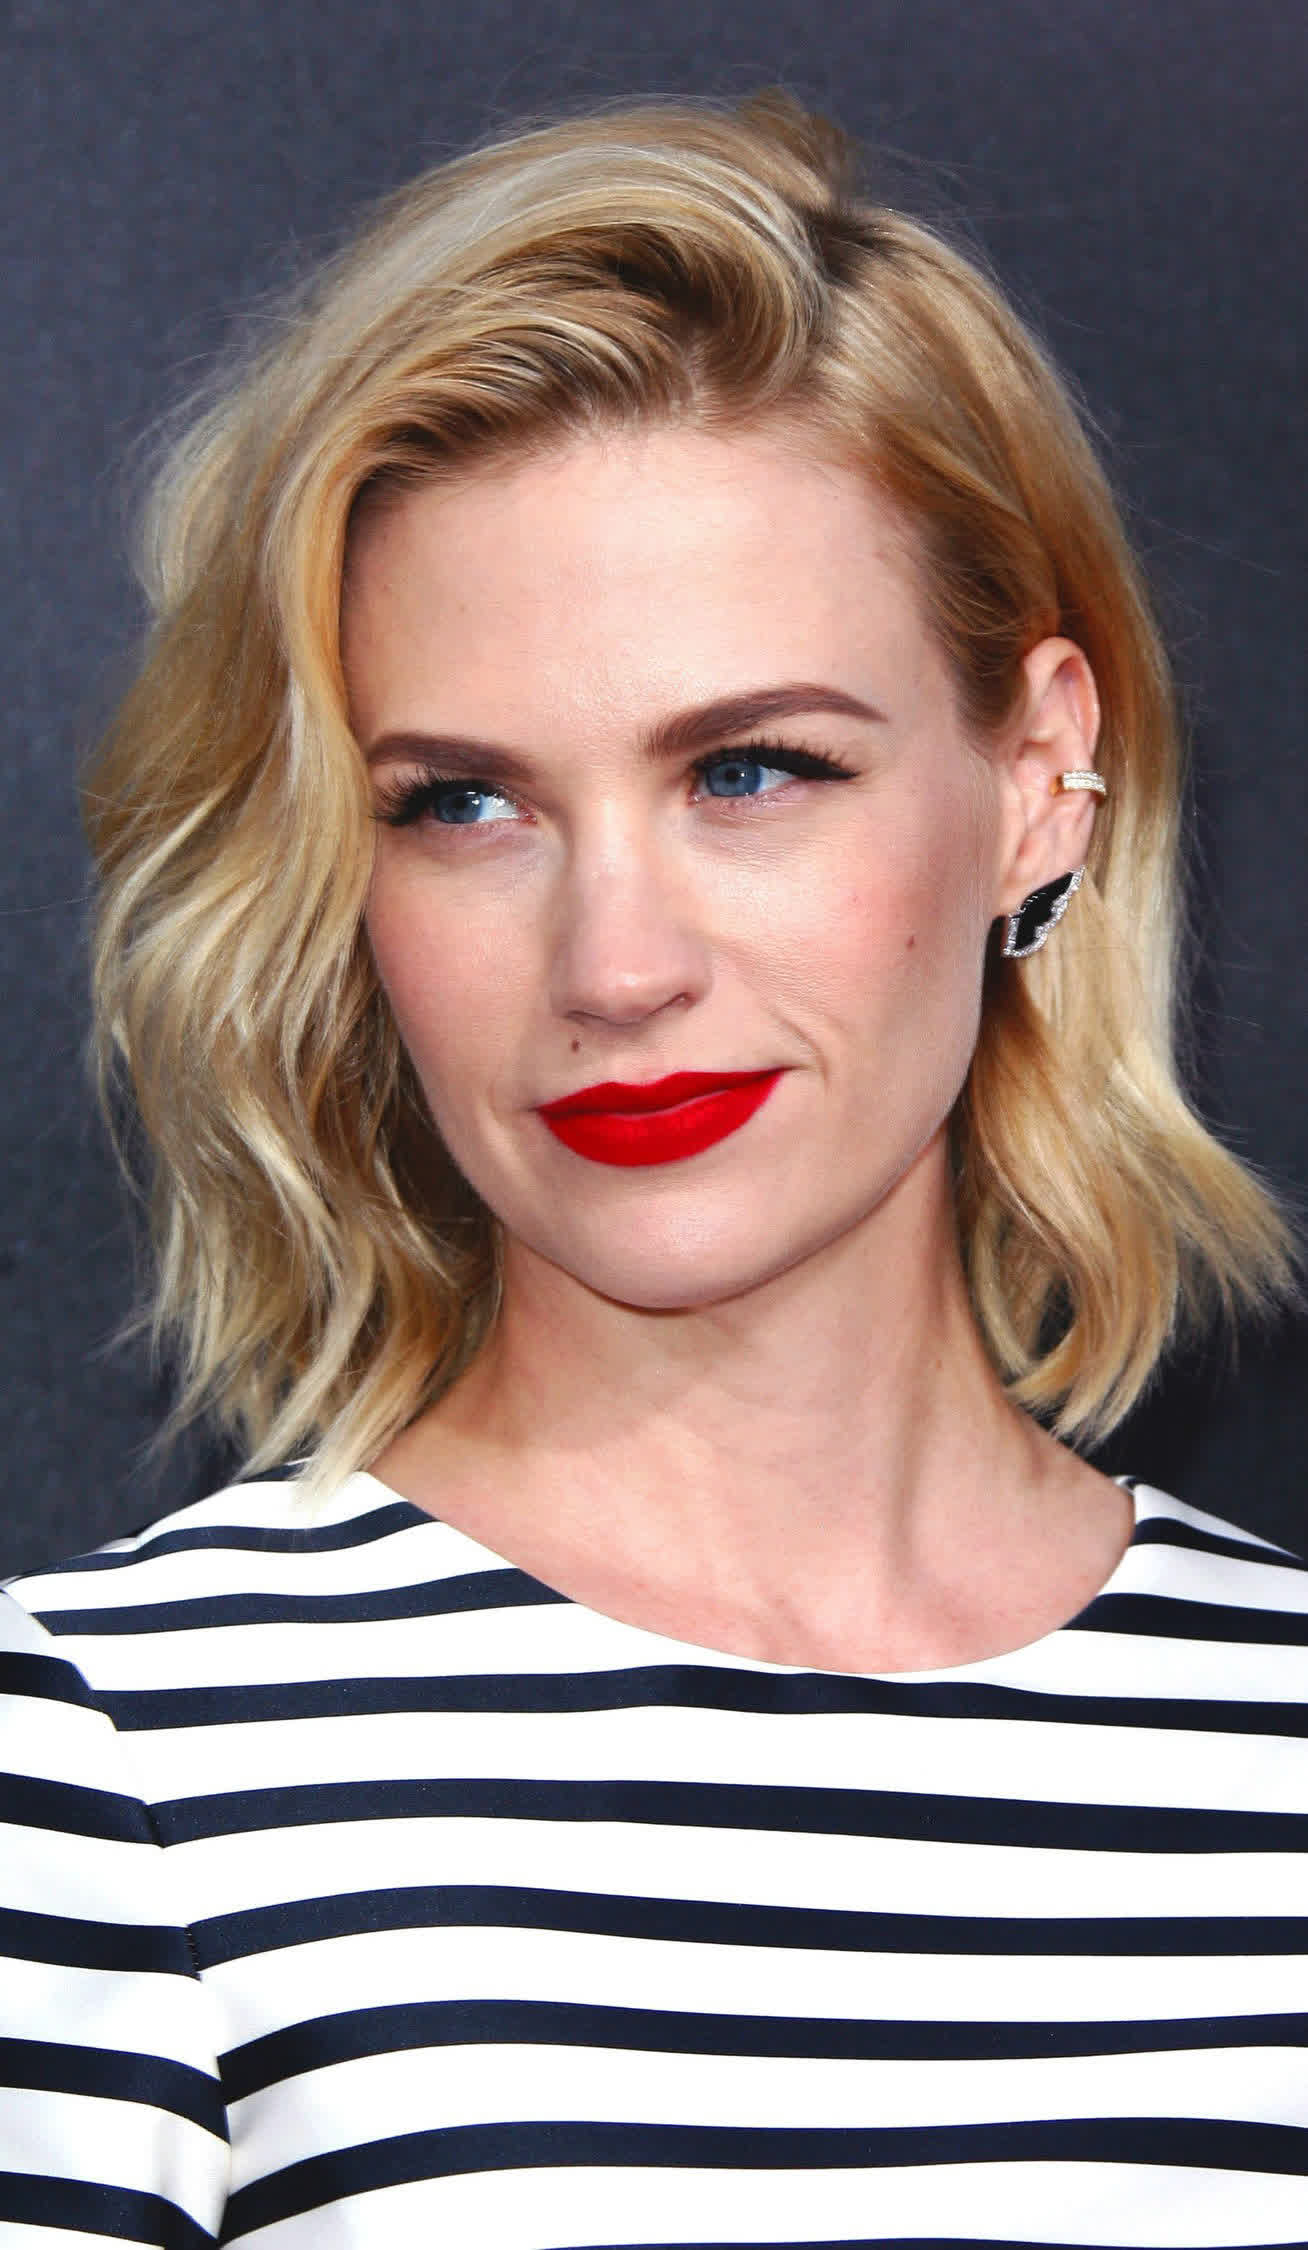 January Jones born January 5, 1978 (age 40)